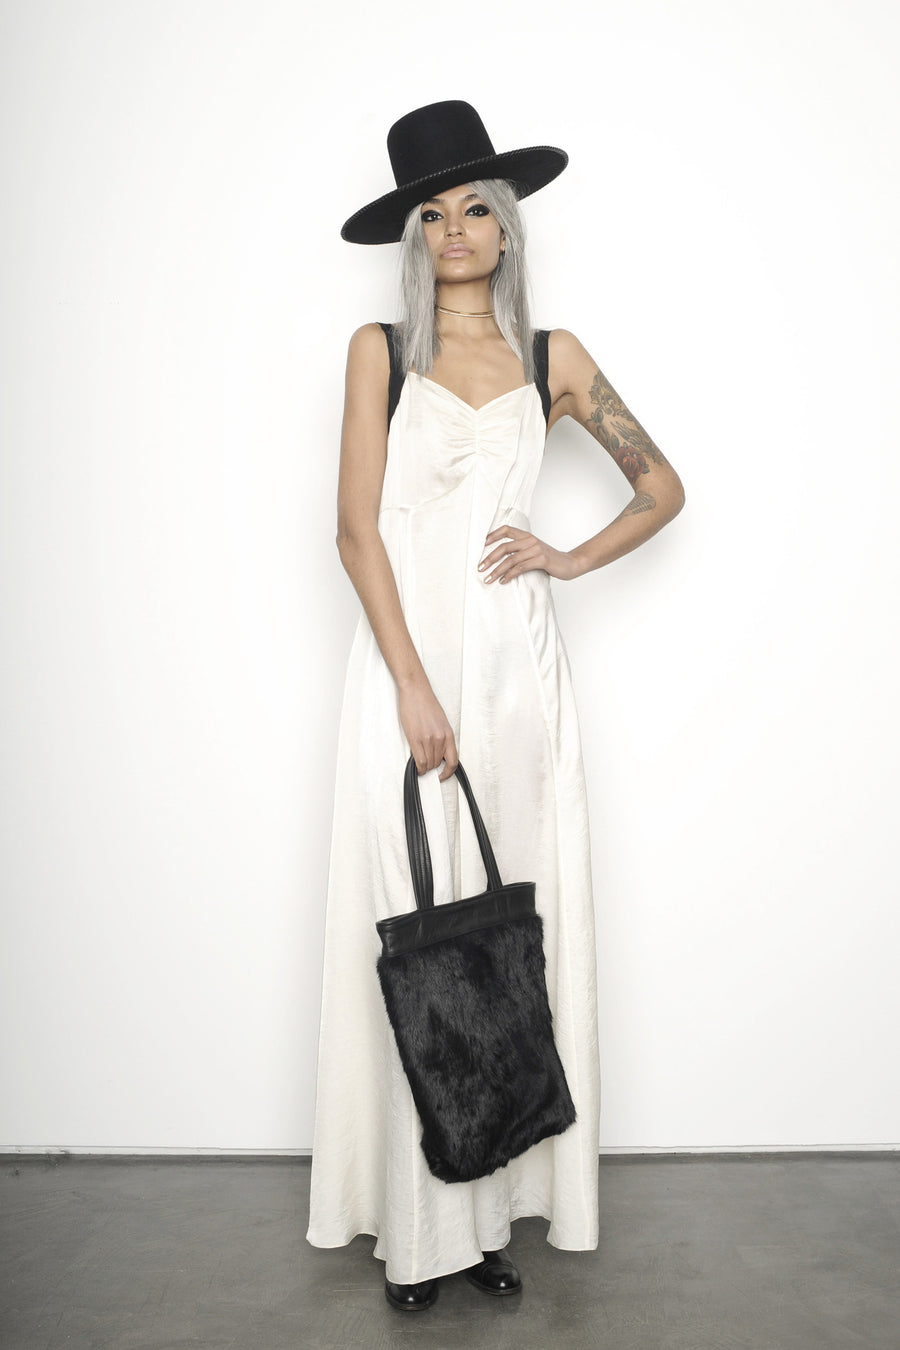 Laura James IMG Model Wendy Nichol Clothing Fashion Designer Runway Show AW15 Queen of Thieves Witch Girl Gang Whipstitch Wide Brim Hat Silk White Empire Waist Slip Dress Black Straps Custom Tailoring Fabric Color Made to Measure Order Handmade in NYC